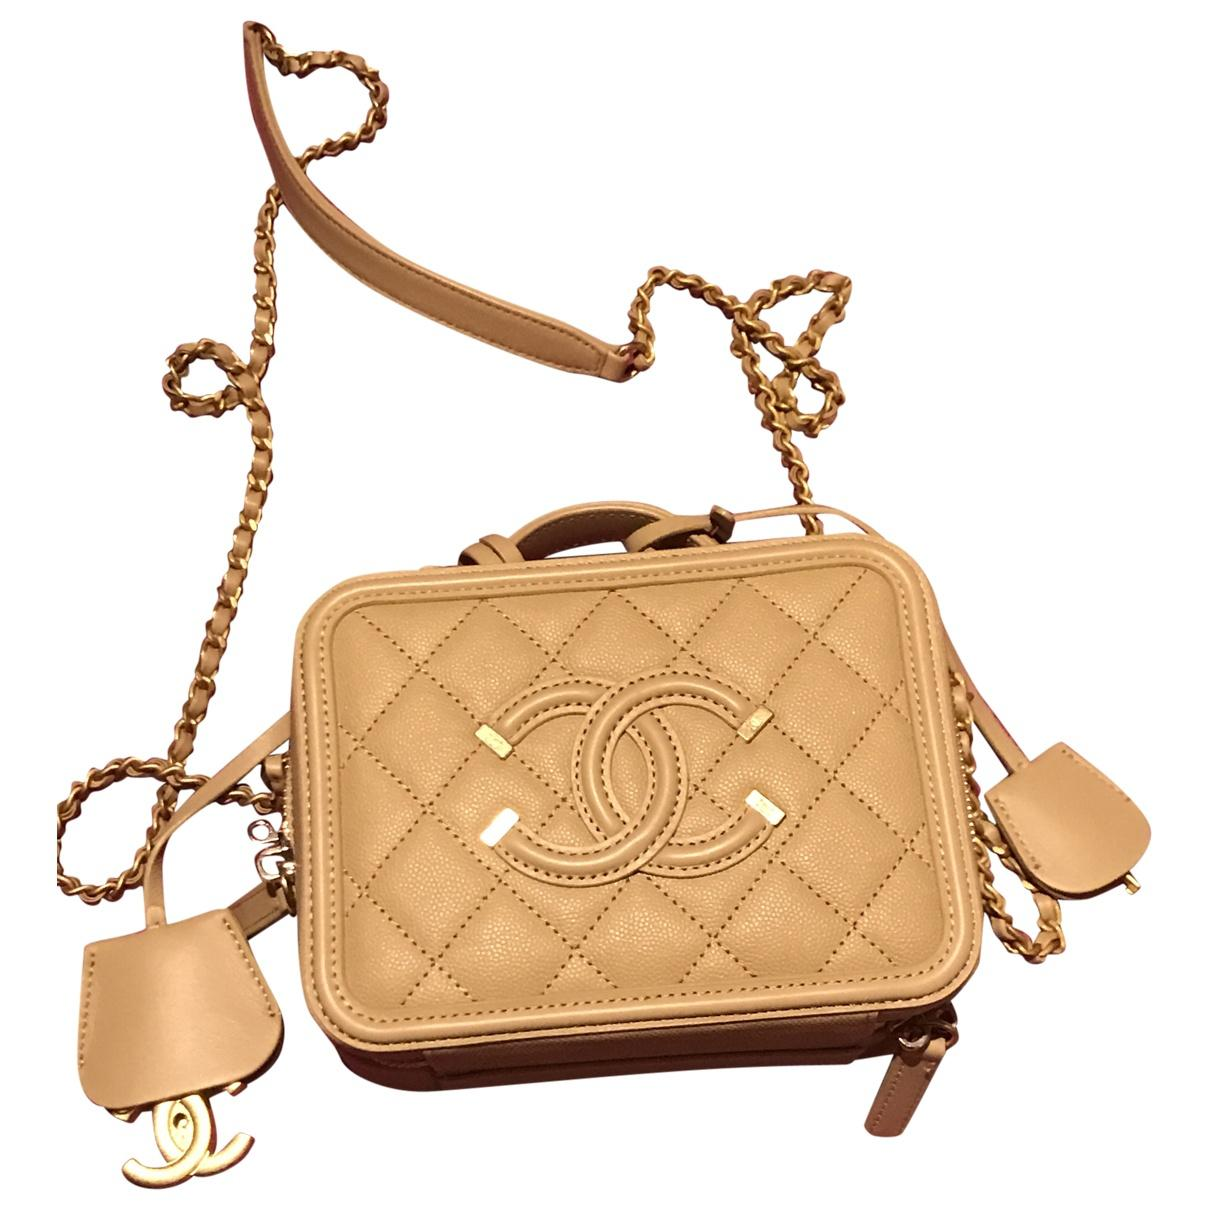 36f2e2bde22b Lyst - Chanel Vanity Leather Crossbody Bag in Natural